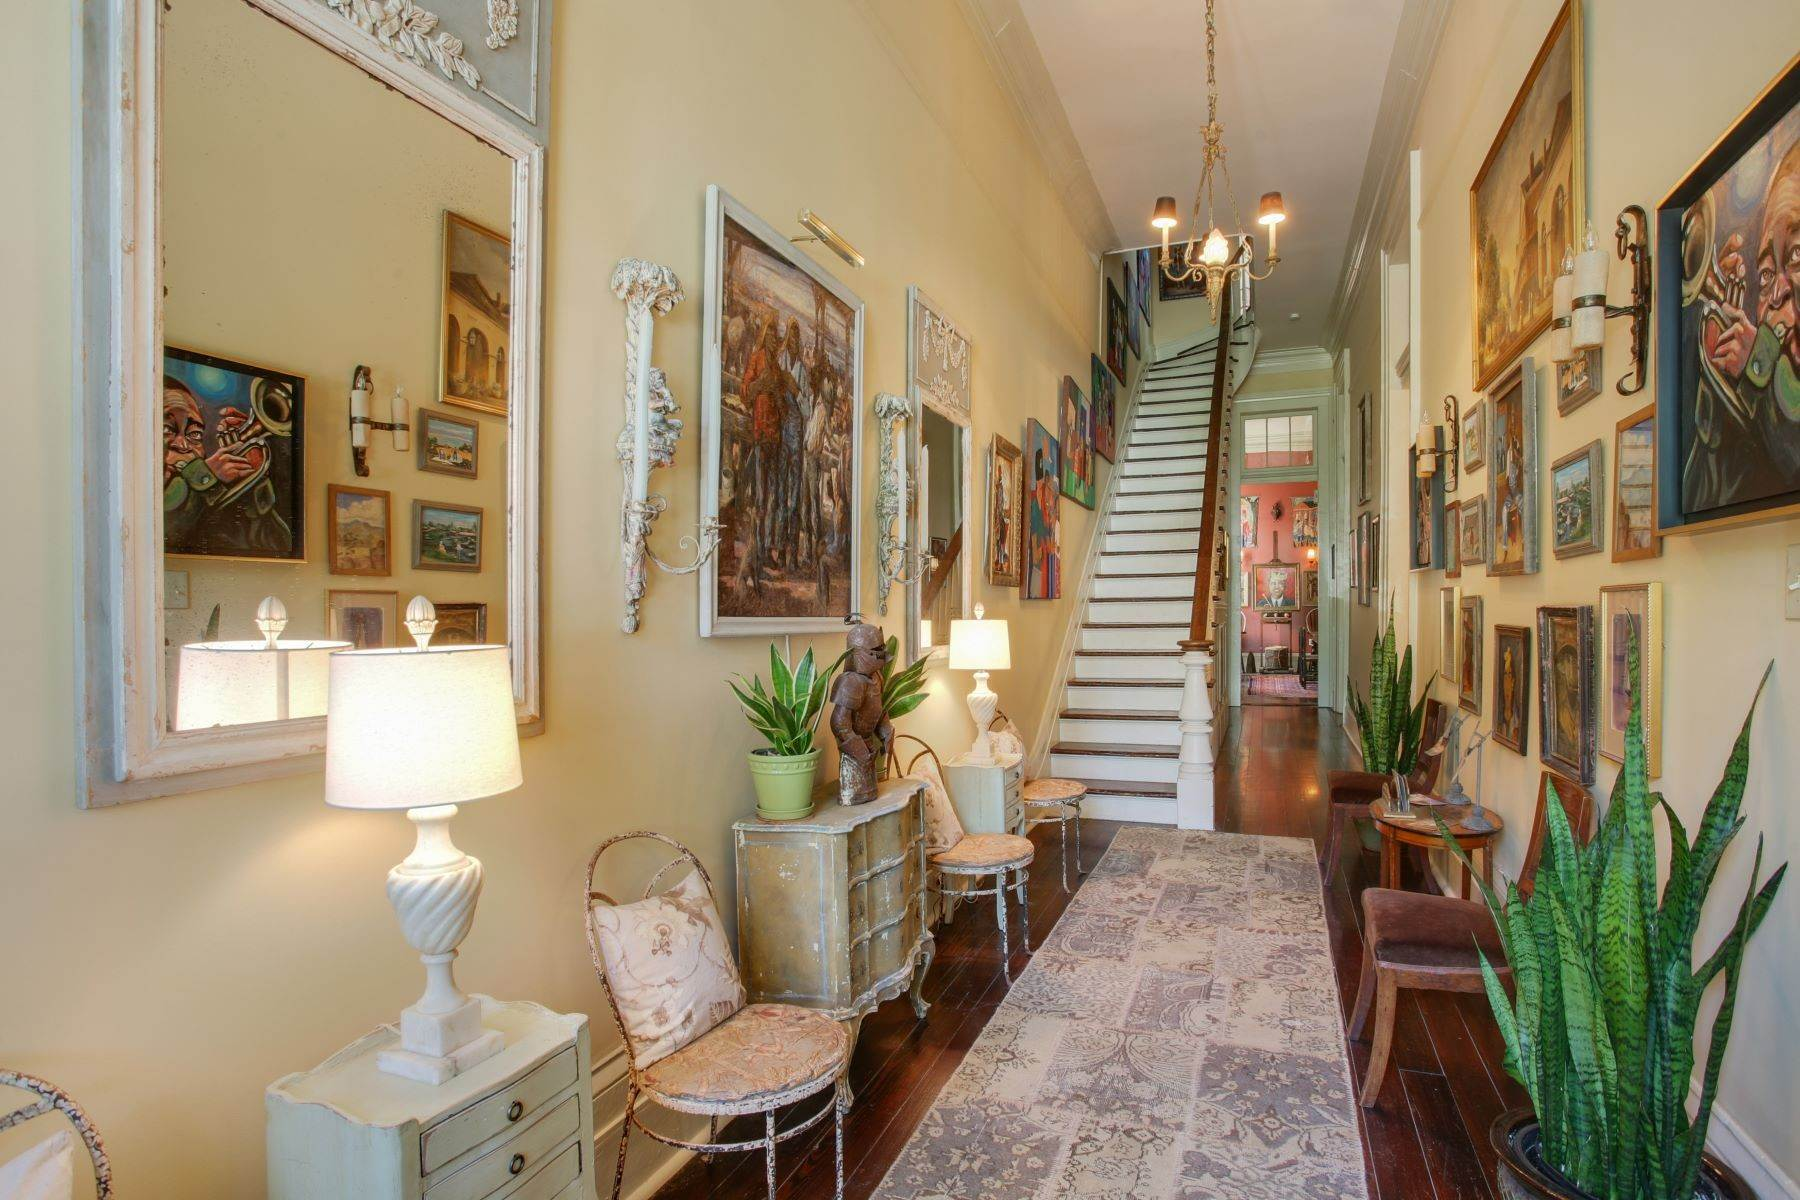 5. Single Family Homes for Sale at 1216 CAMP Street 1216 Camp St New Orleans, Louisiana 70130 United States